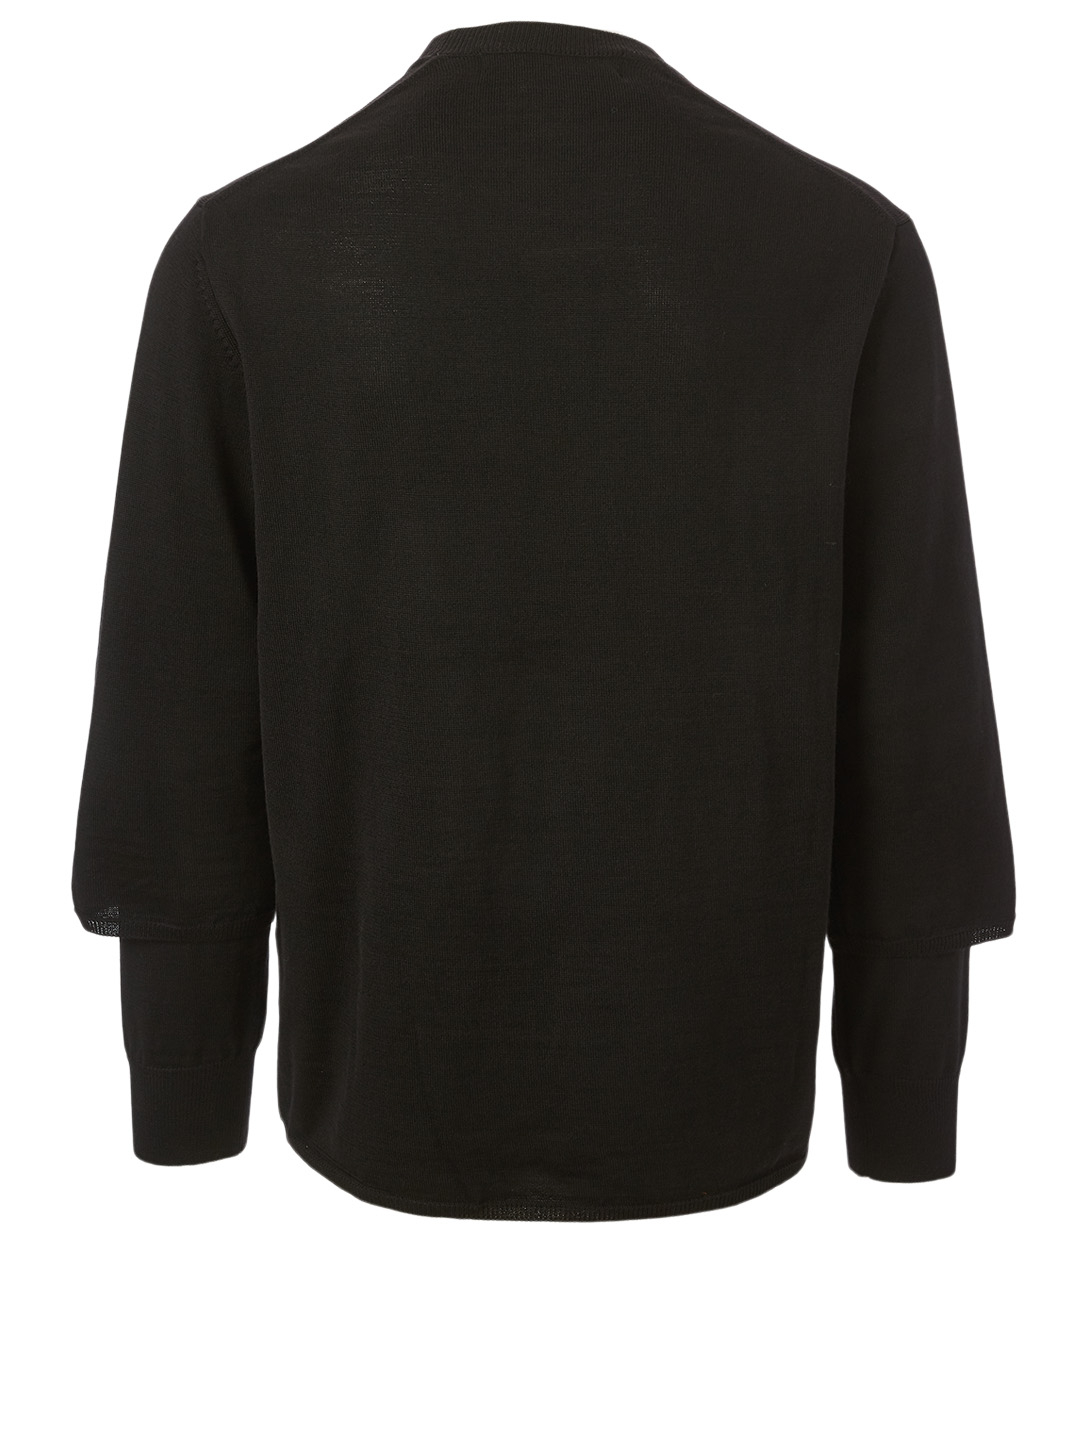 COMME DES GARÇONS HOMME PLUS Wool Worsted Yarn Sweater Men's Black